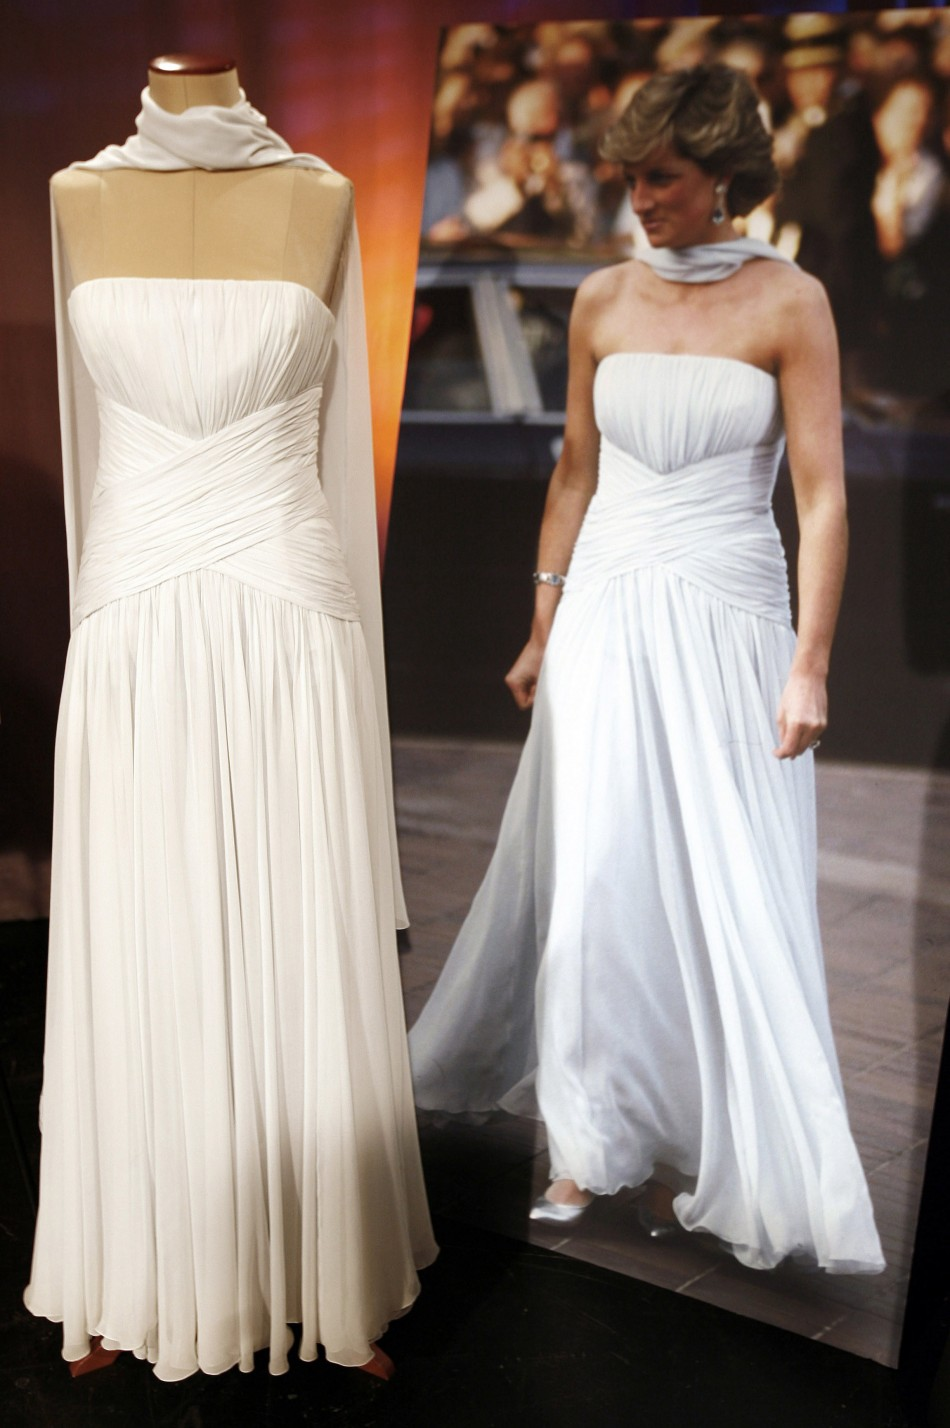 Gown worn by Princess Diana that will be up for television auction is seen in New York